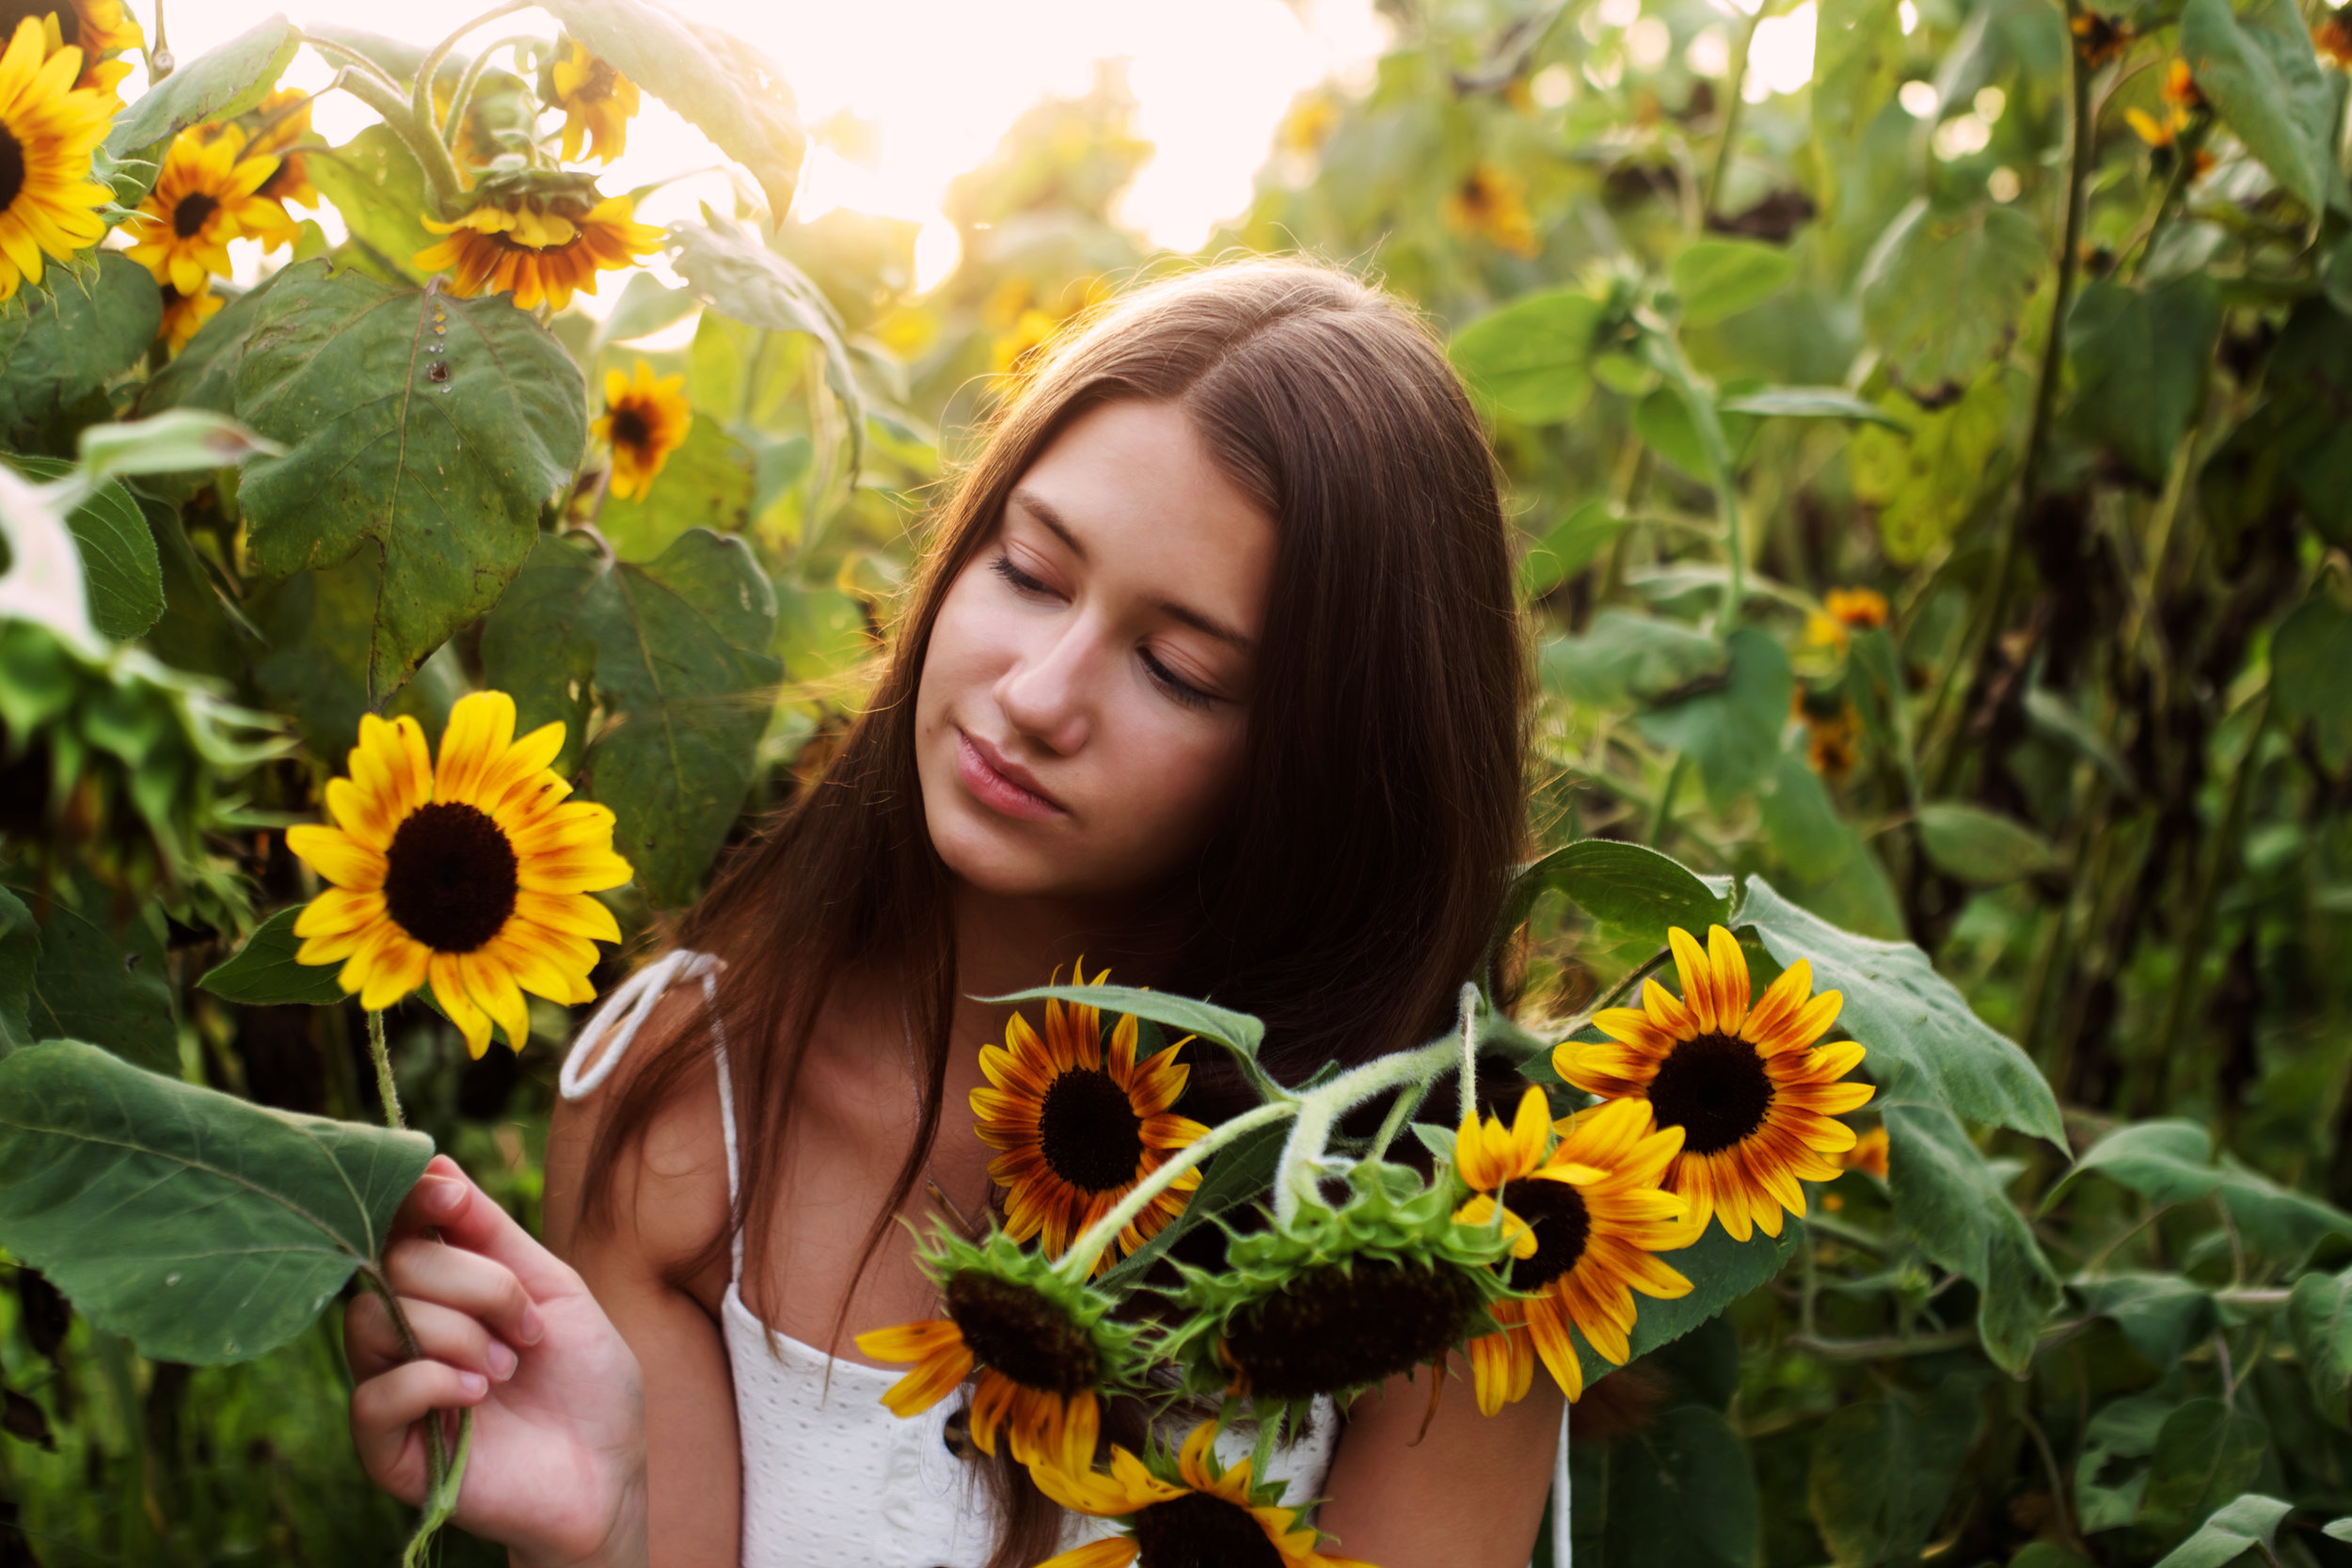 soft-light-and-sunflowers.jpg